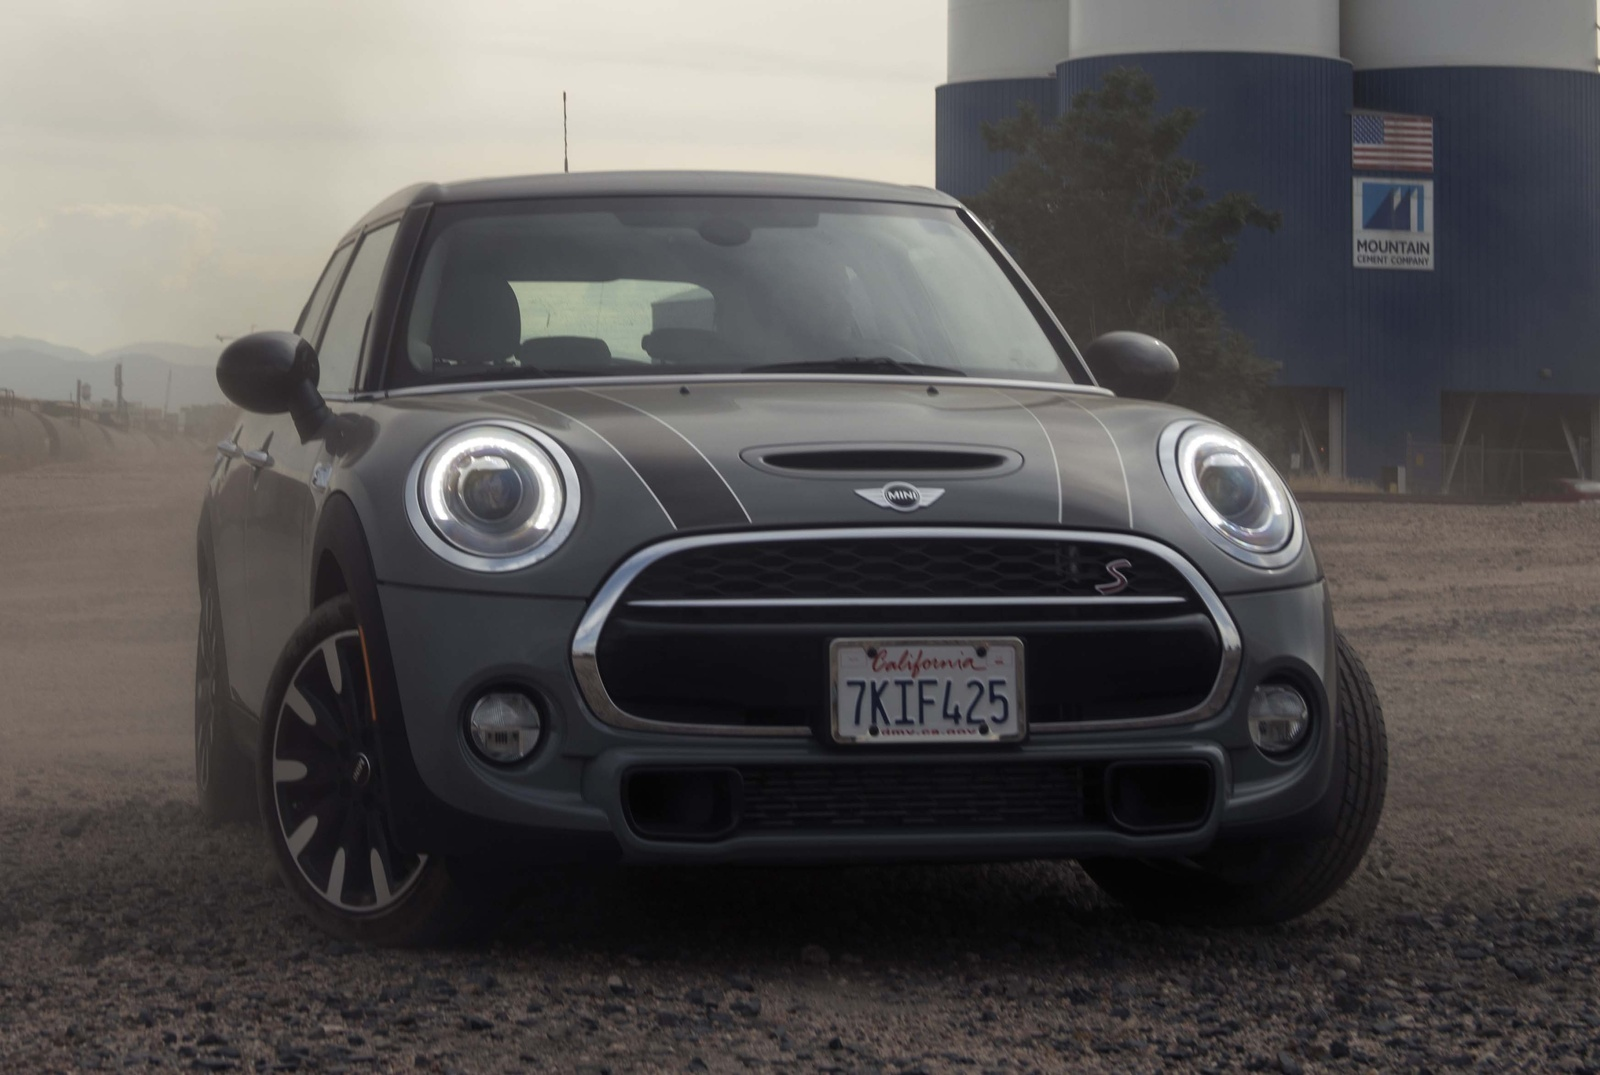 Cars compared to 2015 mini cooper pacemanpeople researching a 2015 mini cooper paceman contacted a dealer about